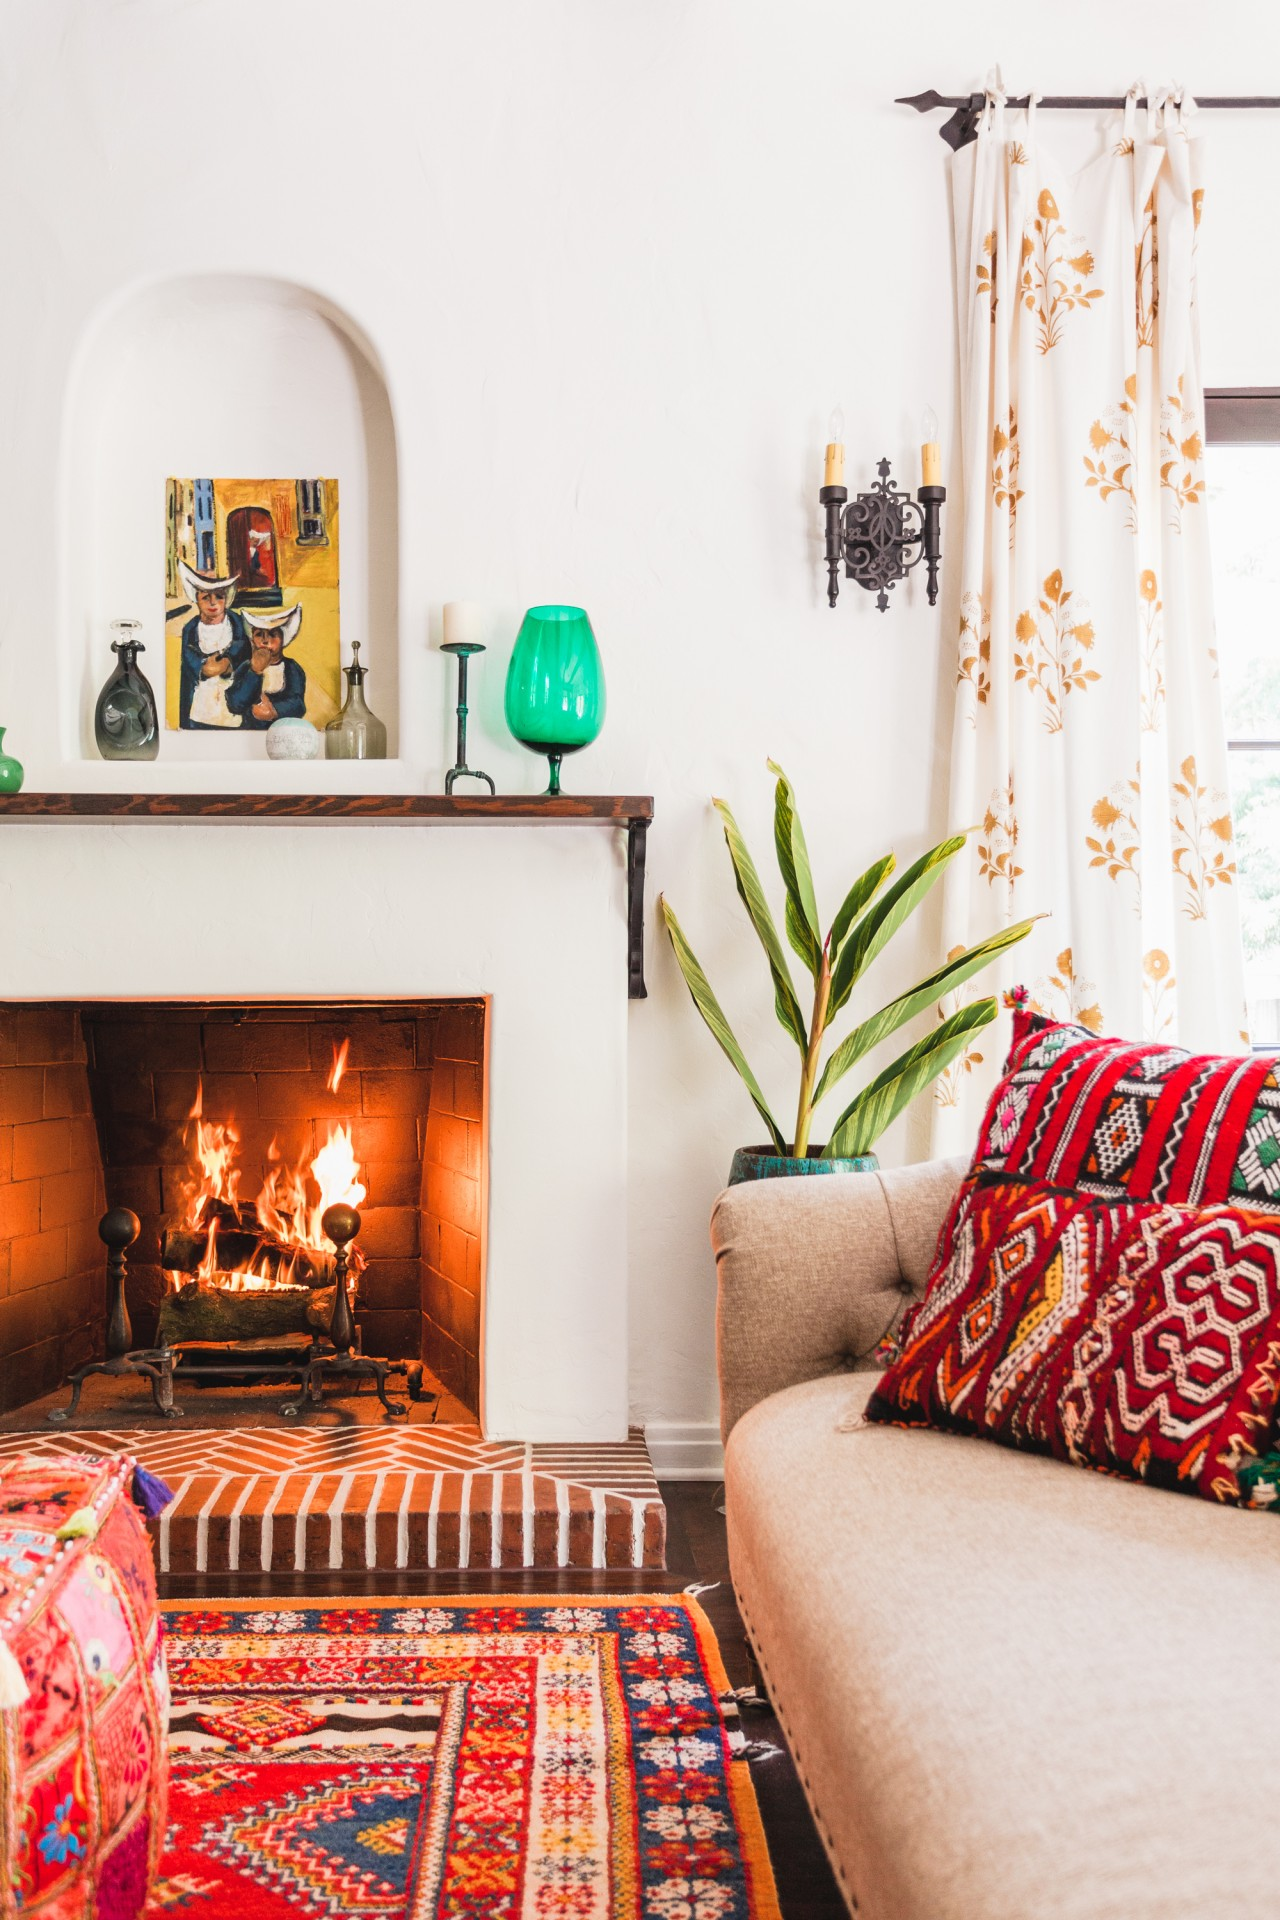 009-beachwood-canyon-living-room-fireplace-niche-styled-vintage-rug-moroccan-pouf-kilim-pillow-pattern-orange-glow-los-angeles-living